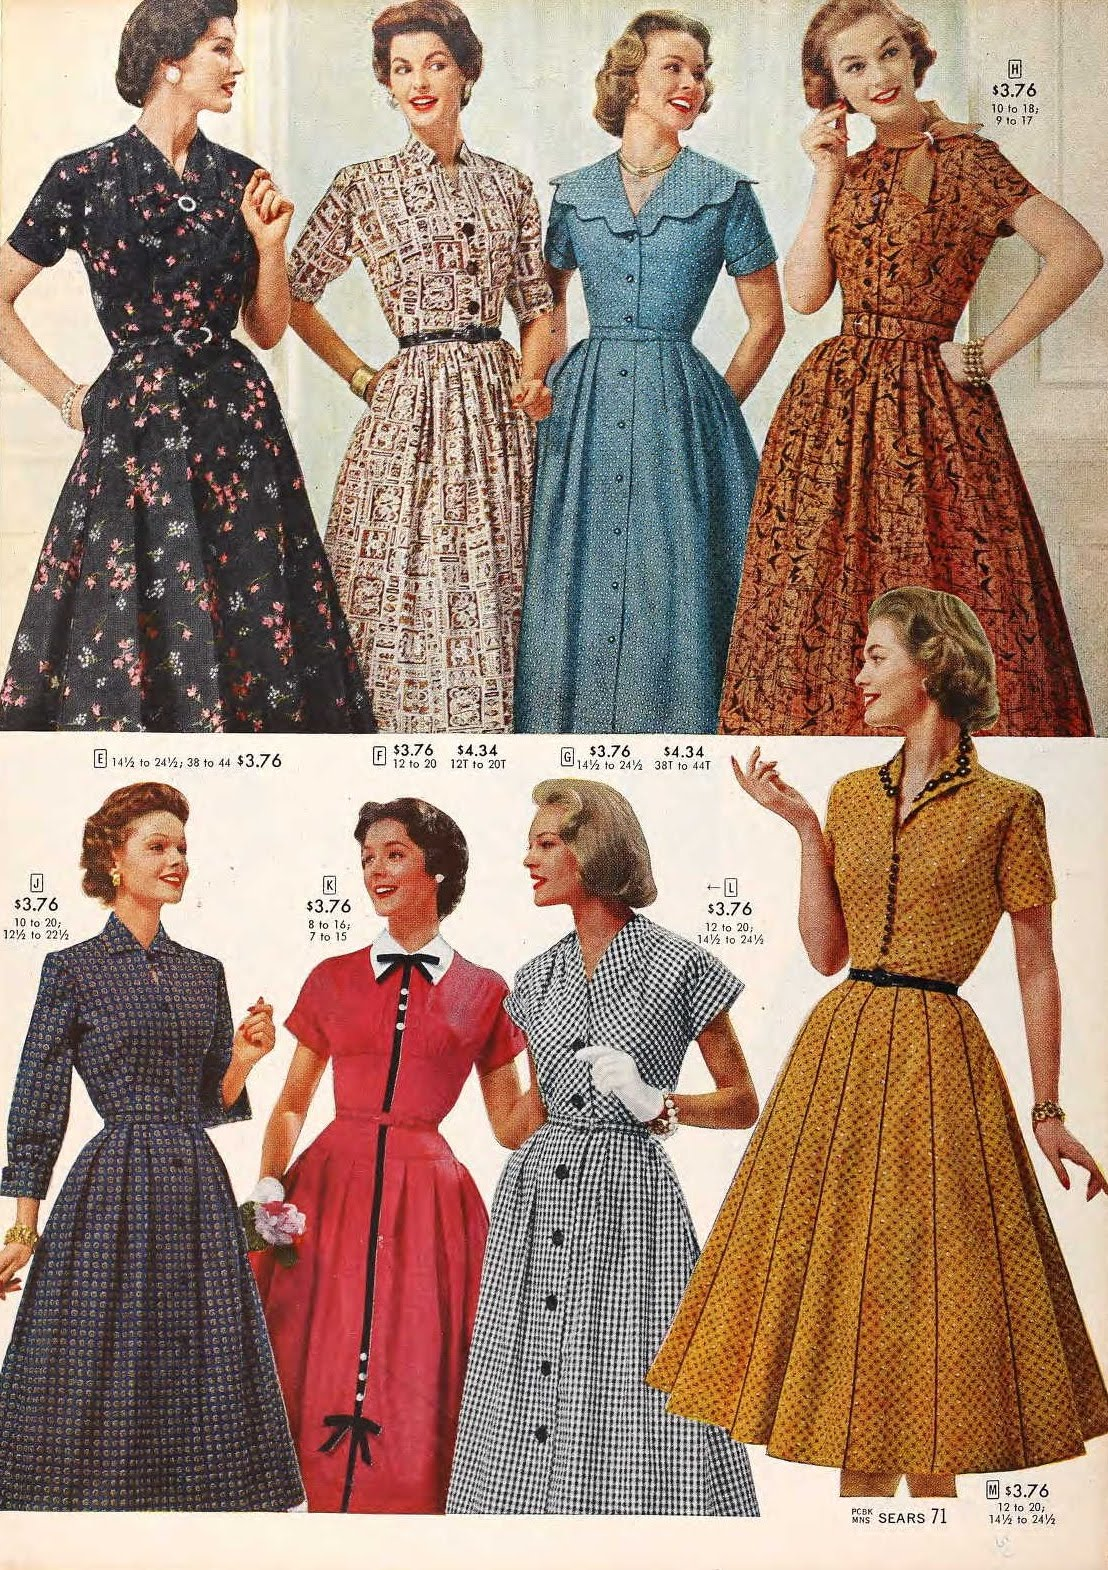 40s Style With M Co And Me: Snapped Garters: 1957 Fashions -- IN COLOUR